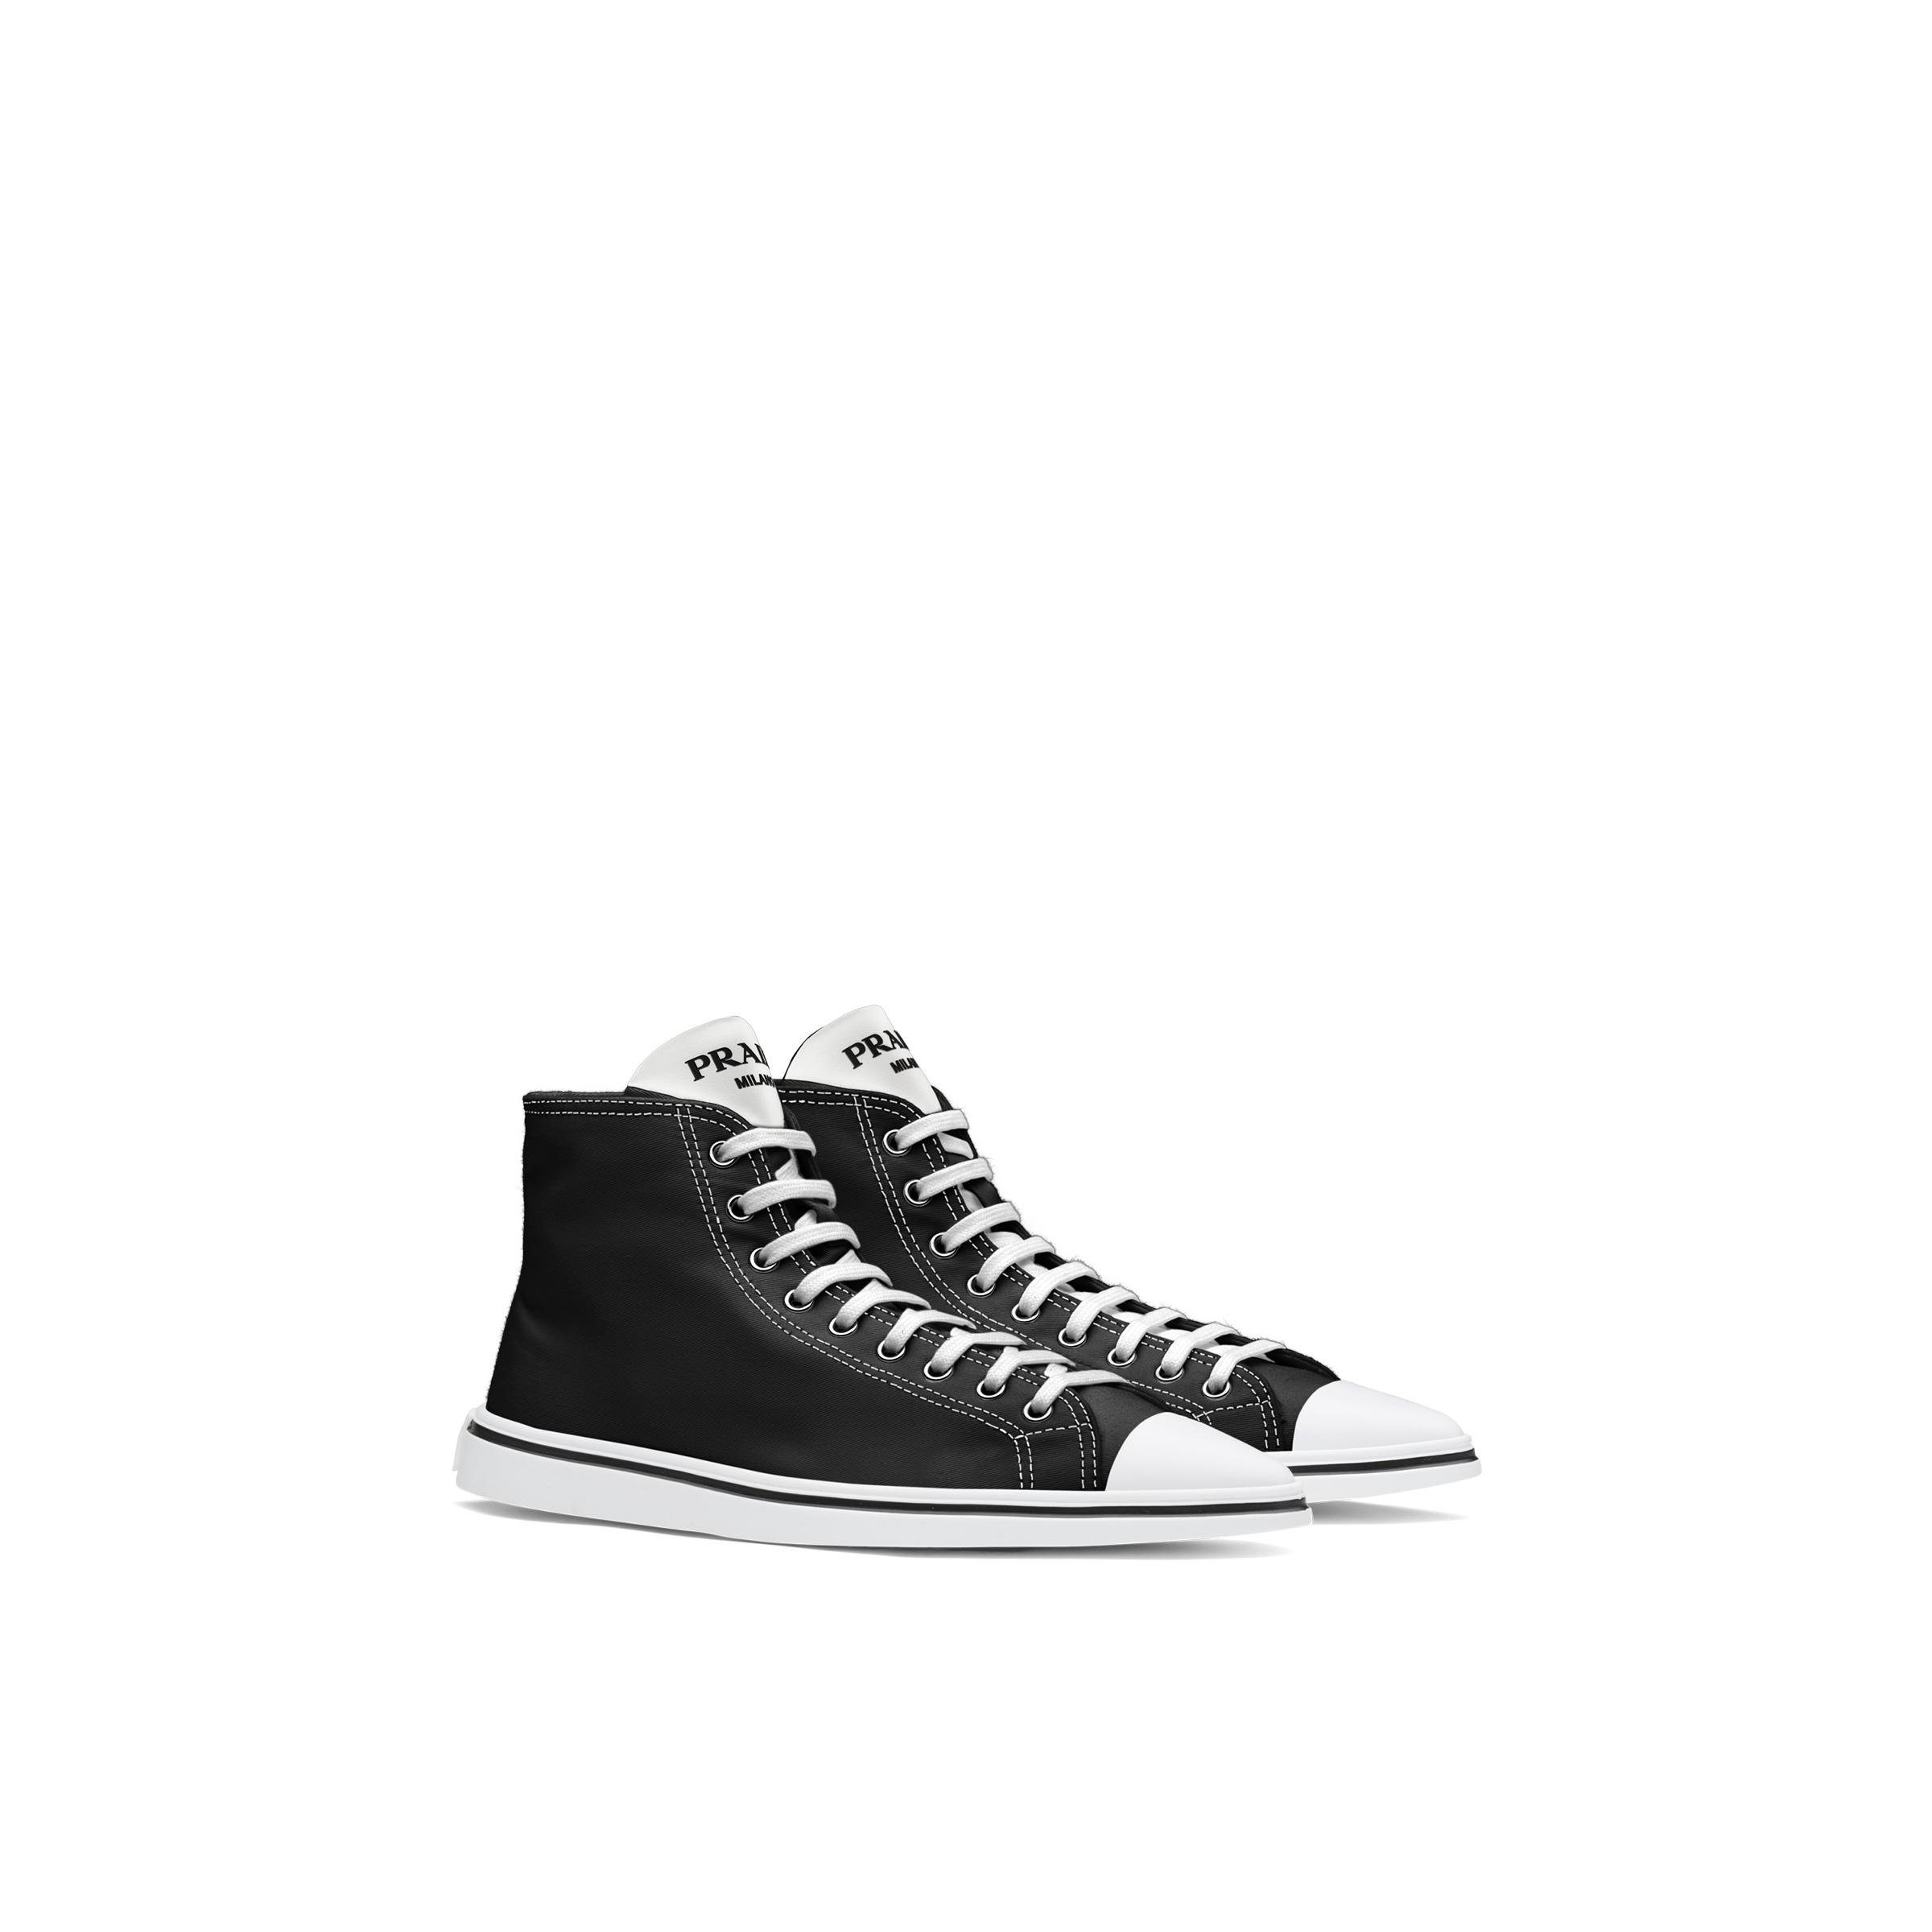 Synthesis High-top Sneakers Women Black